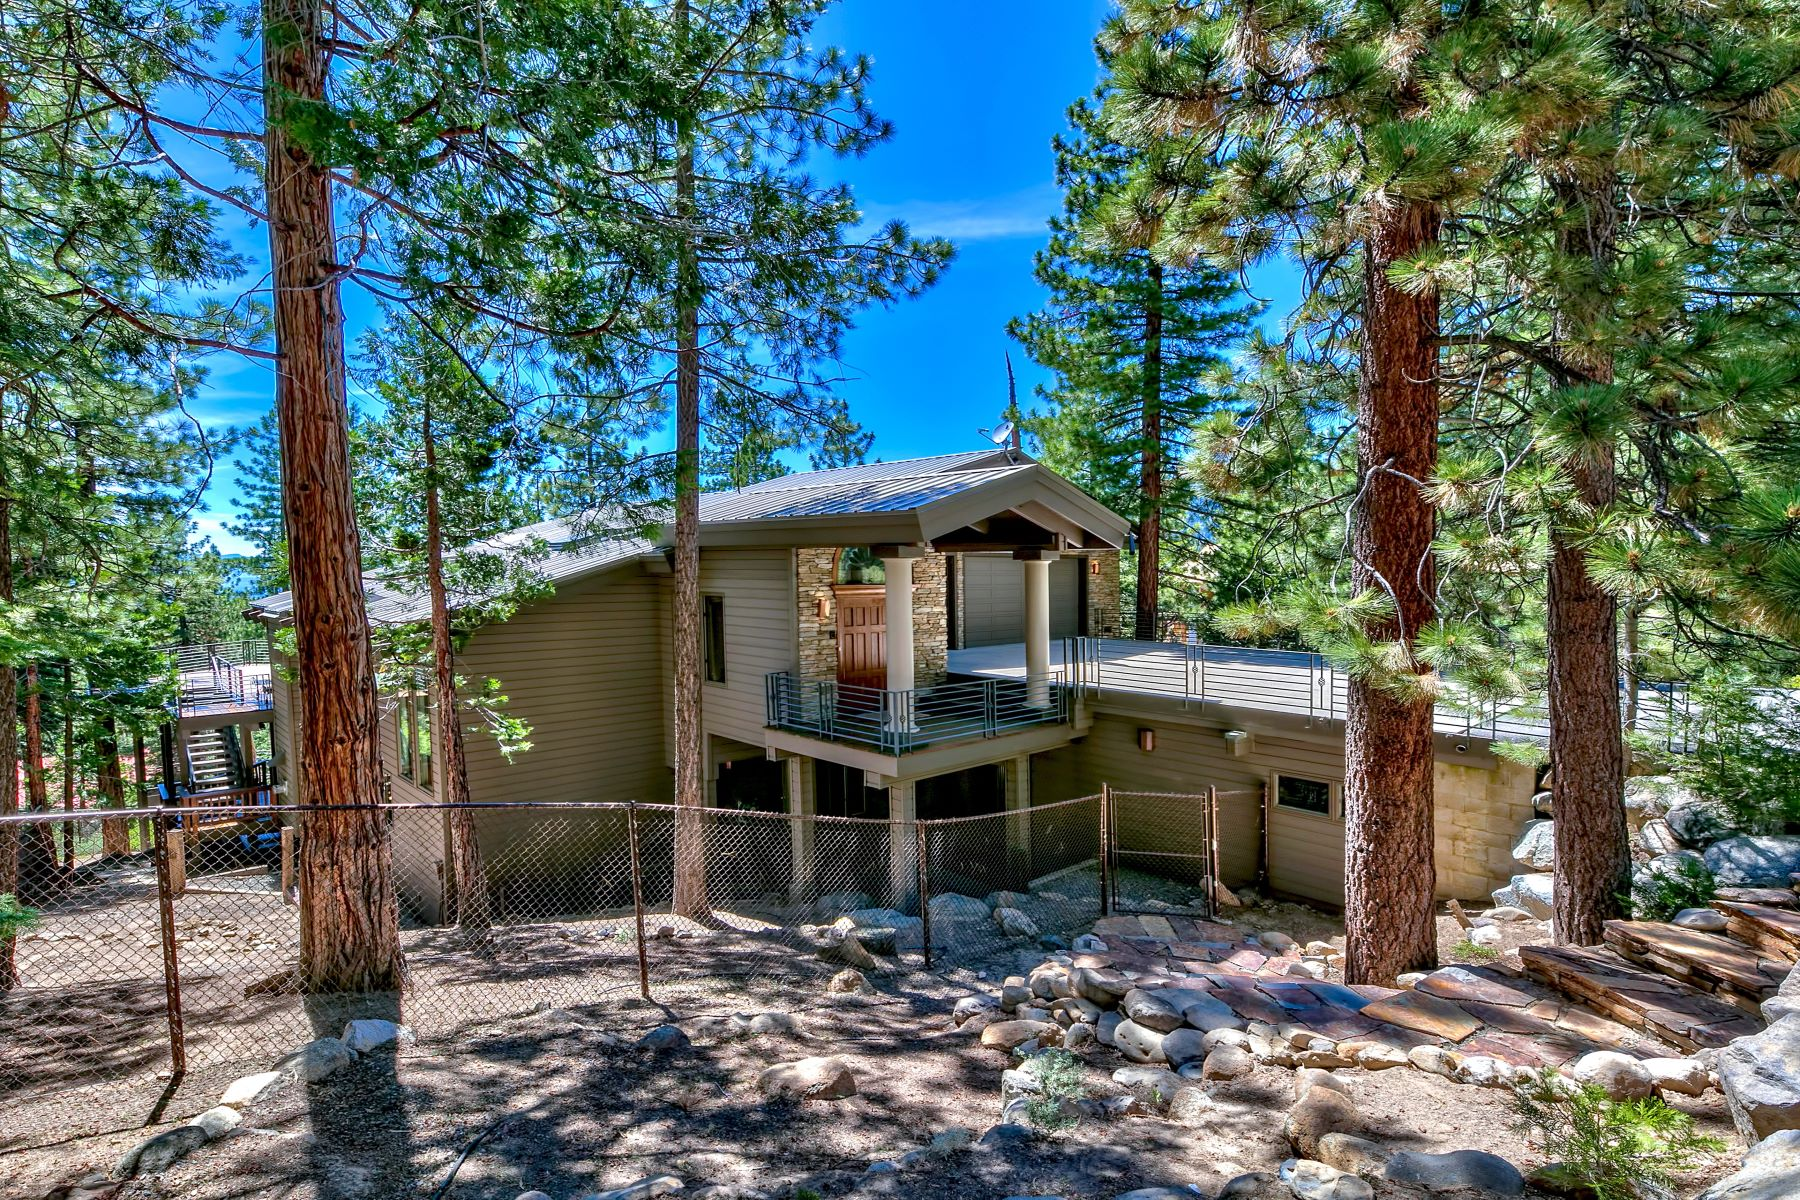 Additional photo for property listing at 475 Eagle Drive, Incline Village, Nevada 475 Eagle Drive Incline Village, Nevada 89451 United States